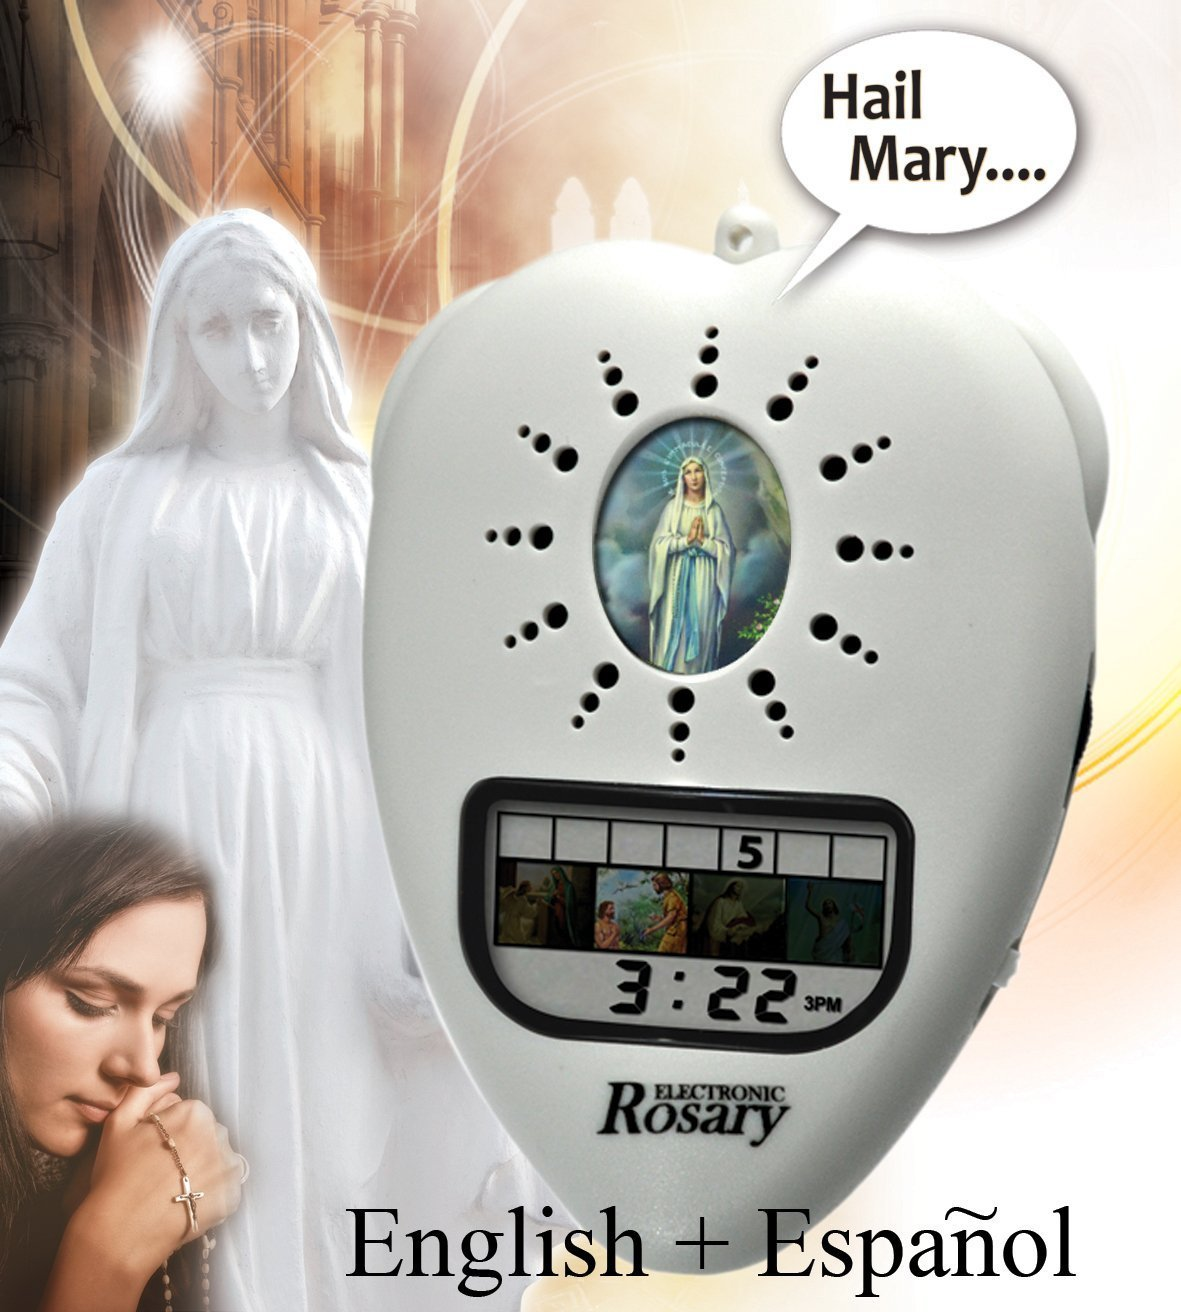 Electronic Rosary E-Rosary Digital Voice Talking (White)